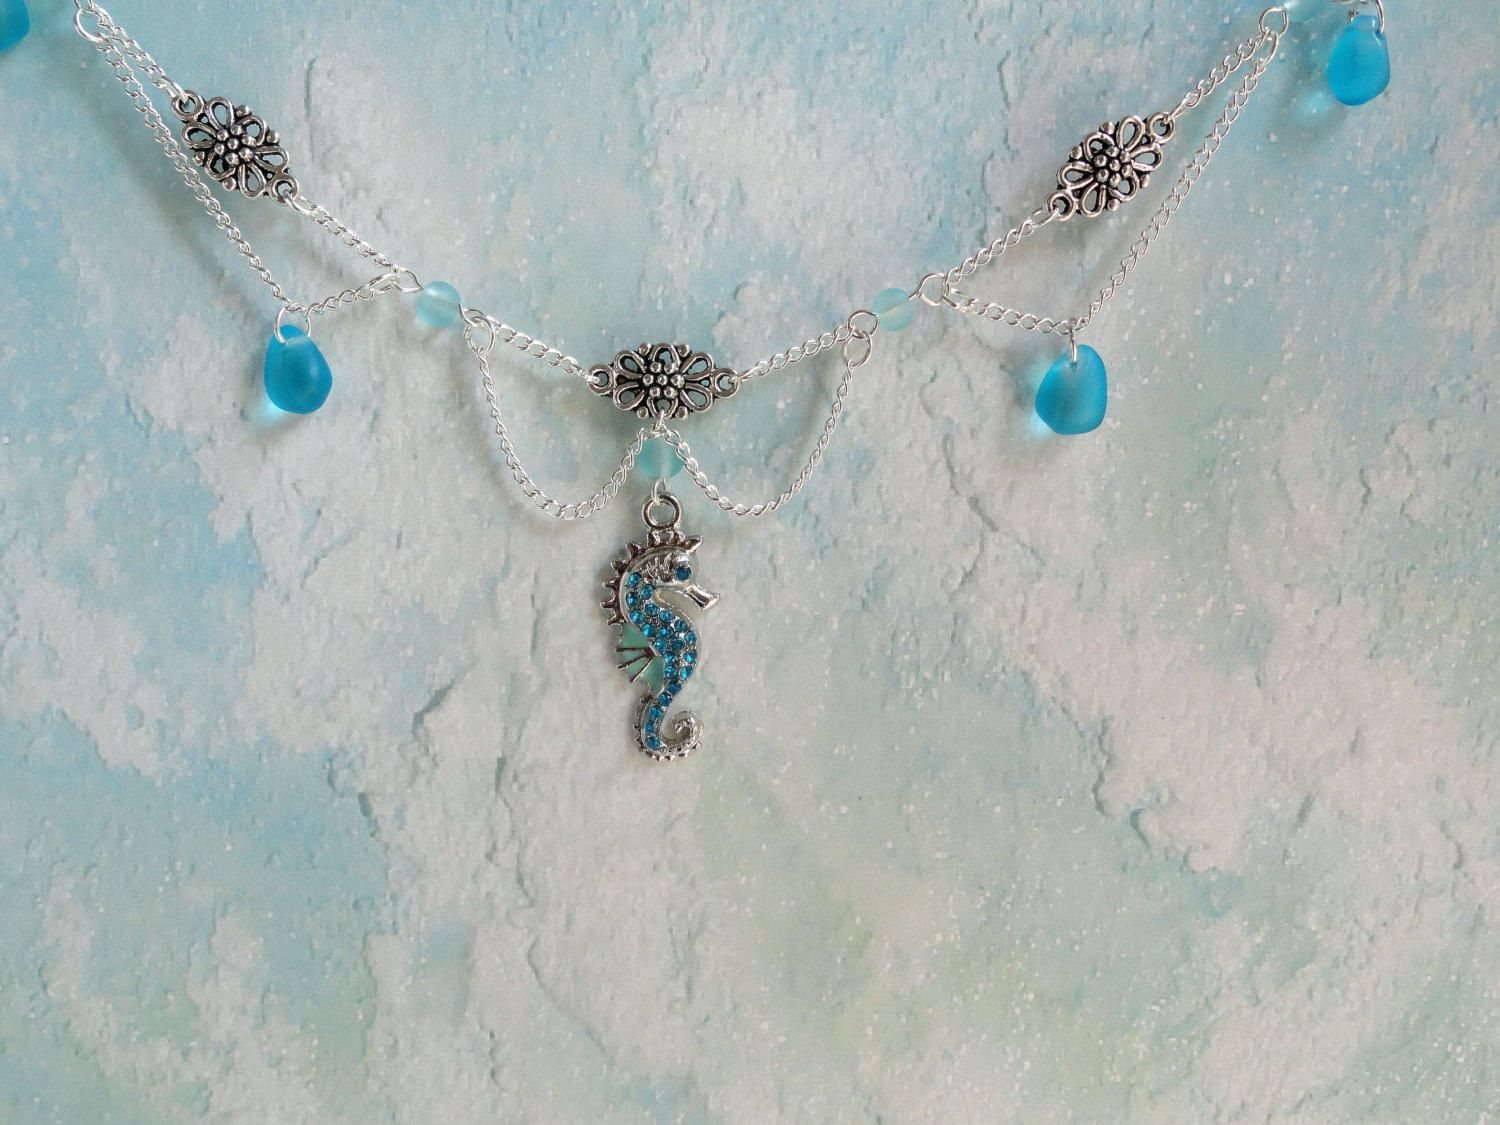 Charming Seahorse Ankle Bracelet / Seahorse Charm Anklet with Rhinestones by ARexrodeCreations on Etsy